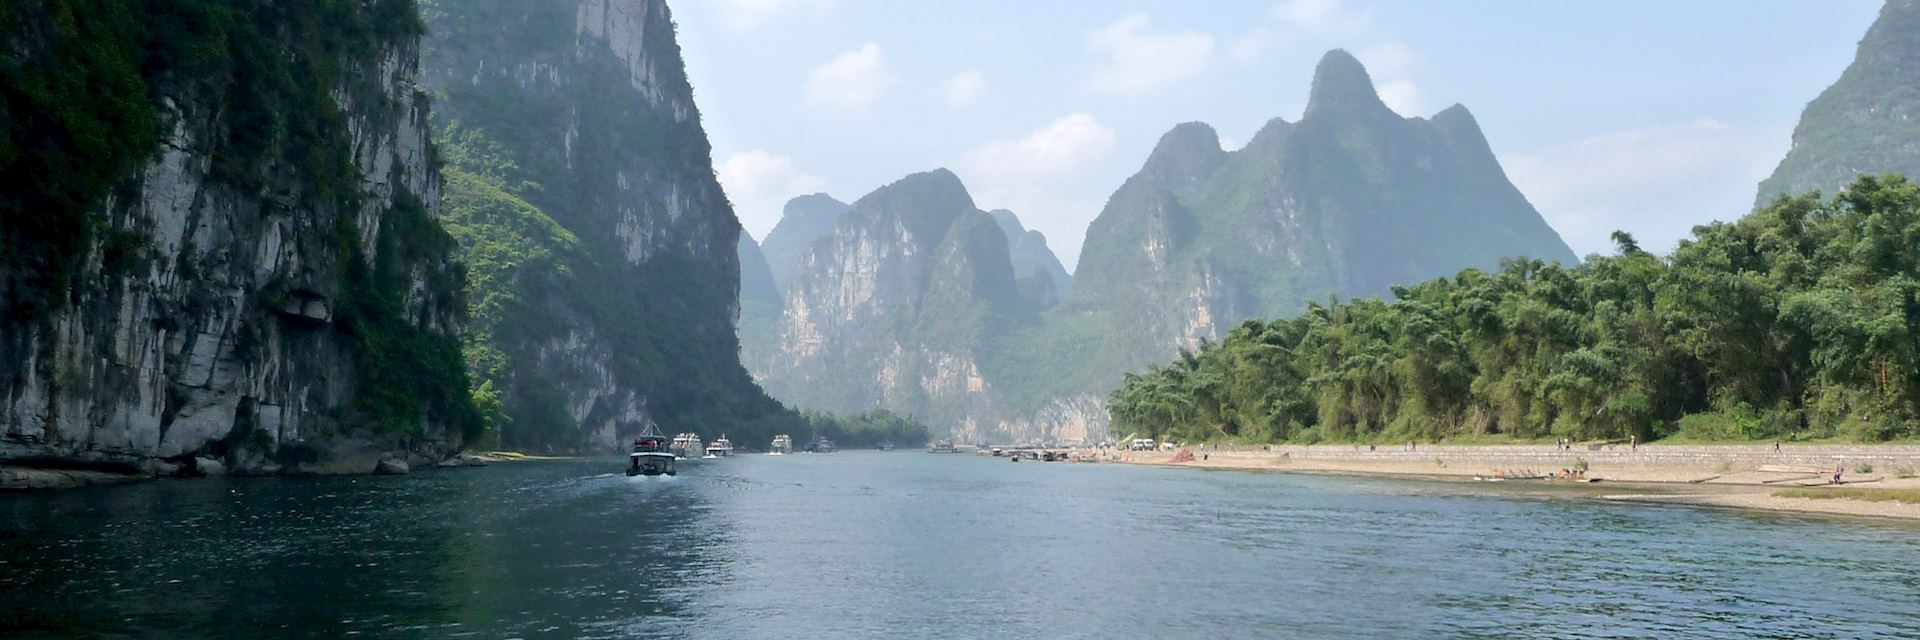 Limestone scenery along the Li River. Guilin, China